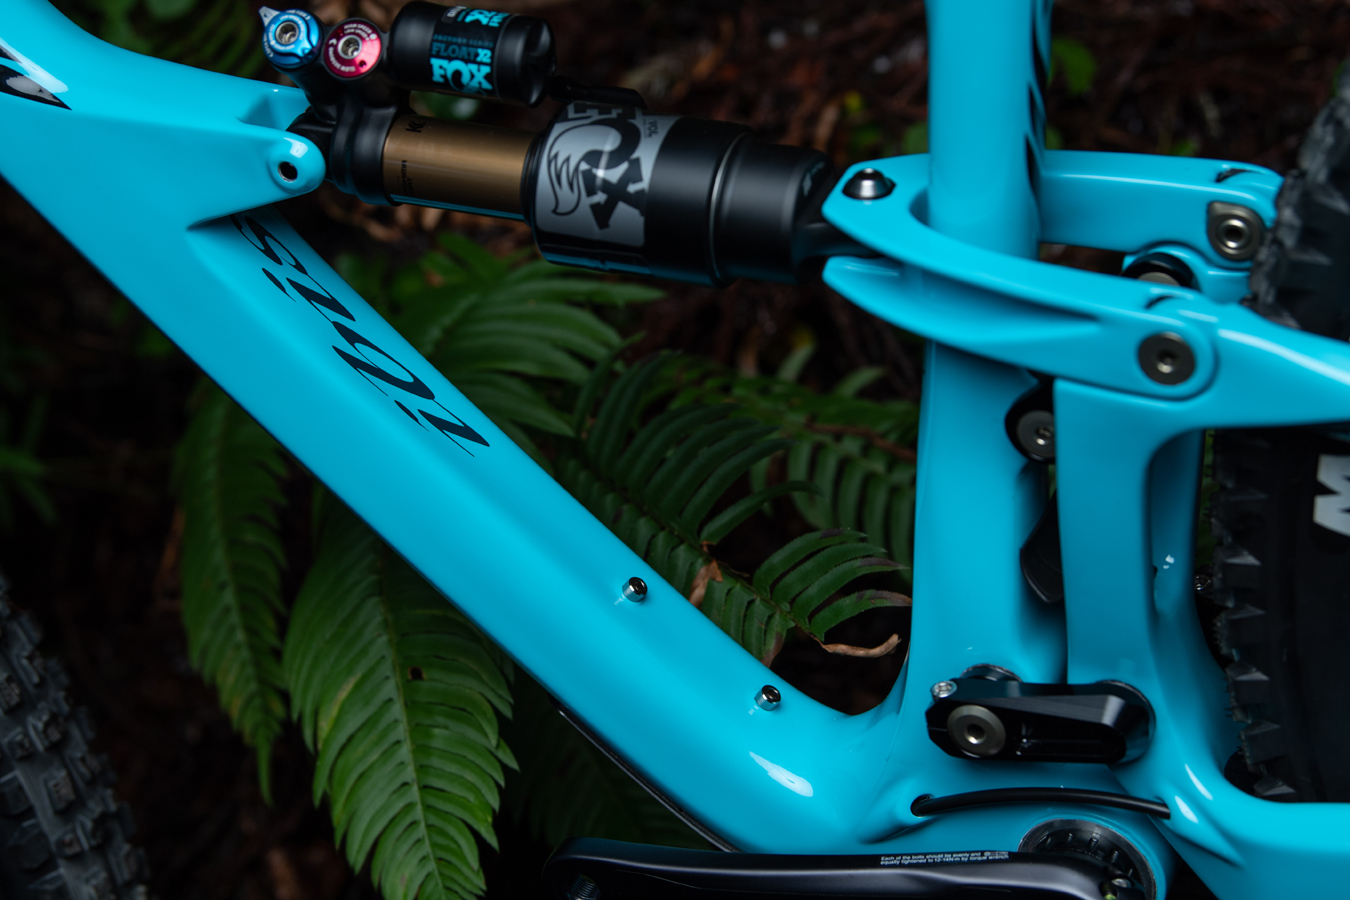 Full internal dropper seatpost routing makes the new Ripmo compatible with longer dropper seatposts.